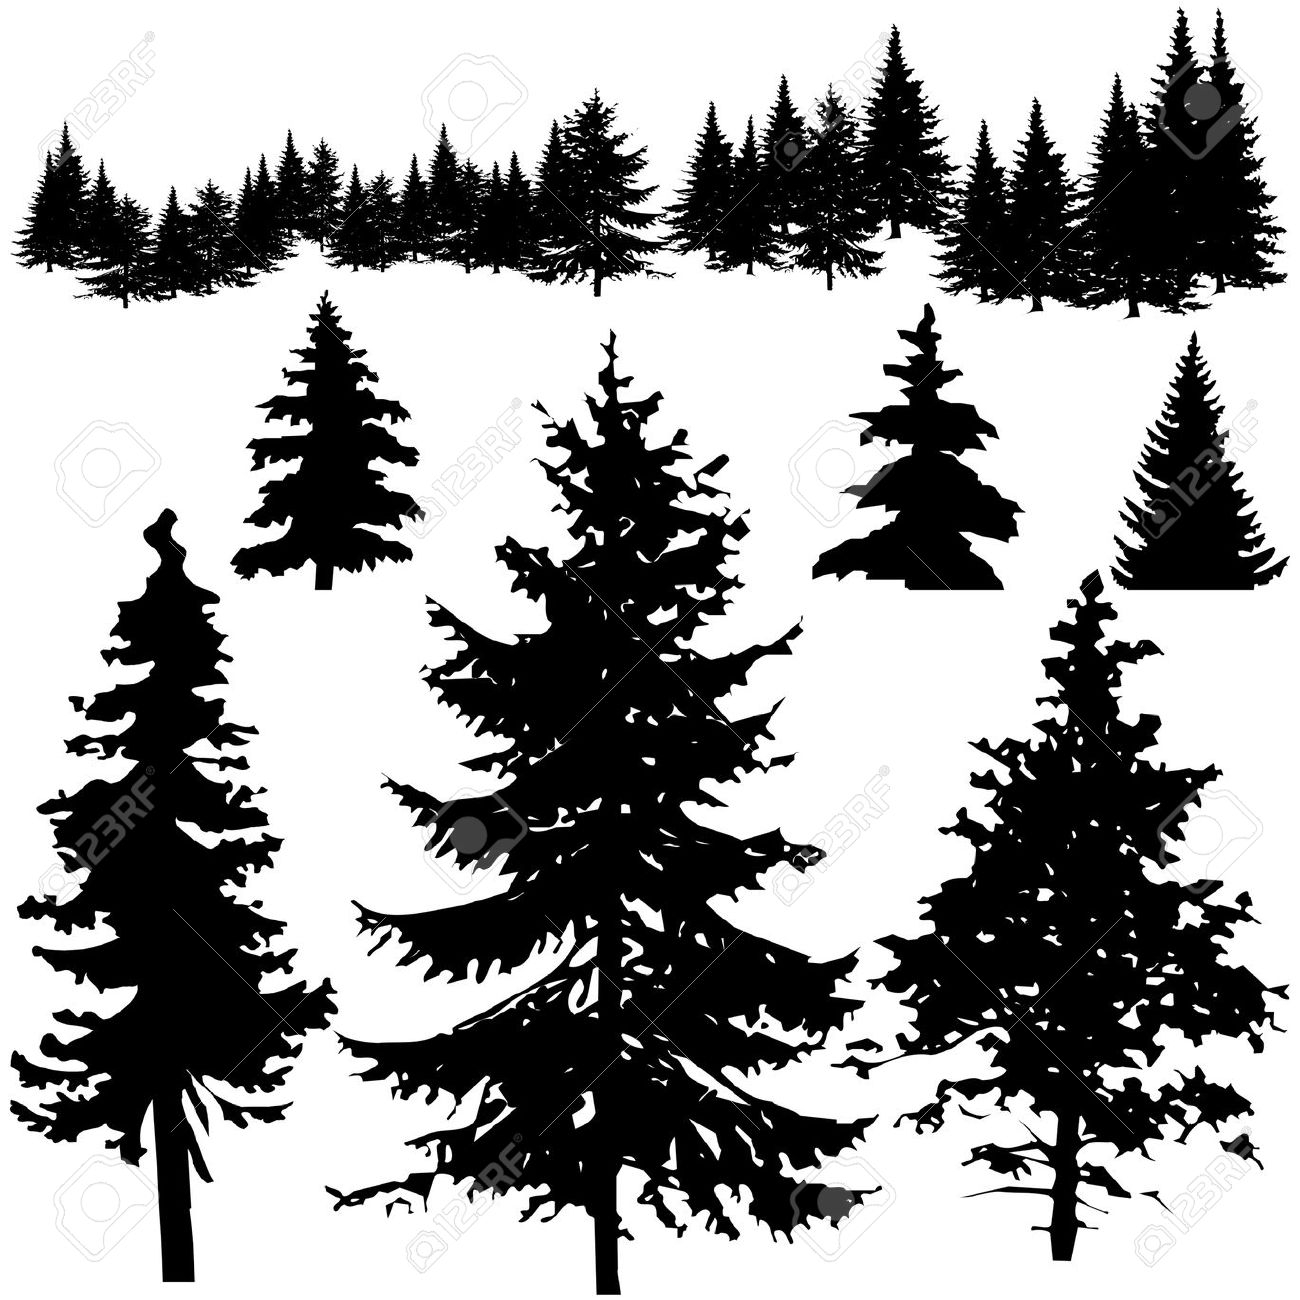 Shaow clipart pine tree 2 silhouette tree clipart Cliparting